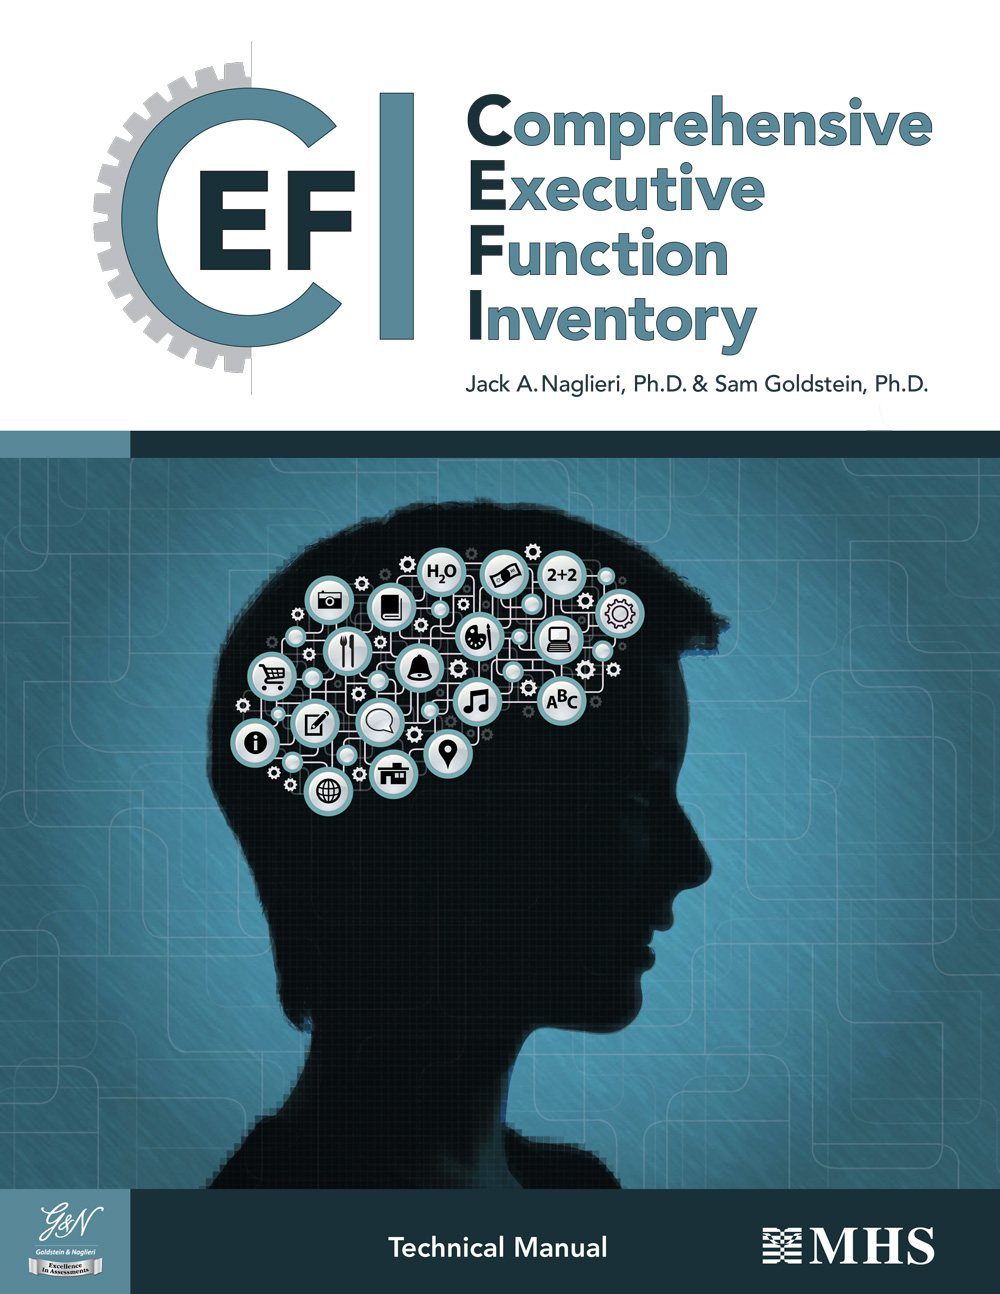 Comprehensive Executive Function Inventory